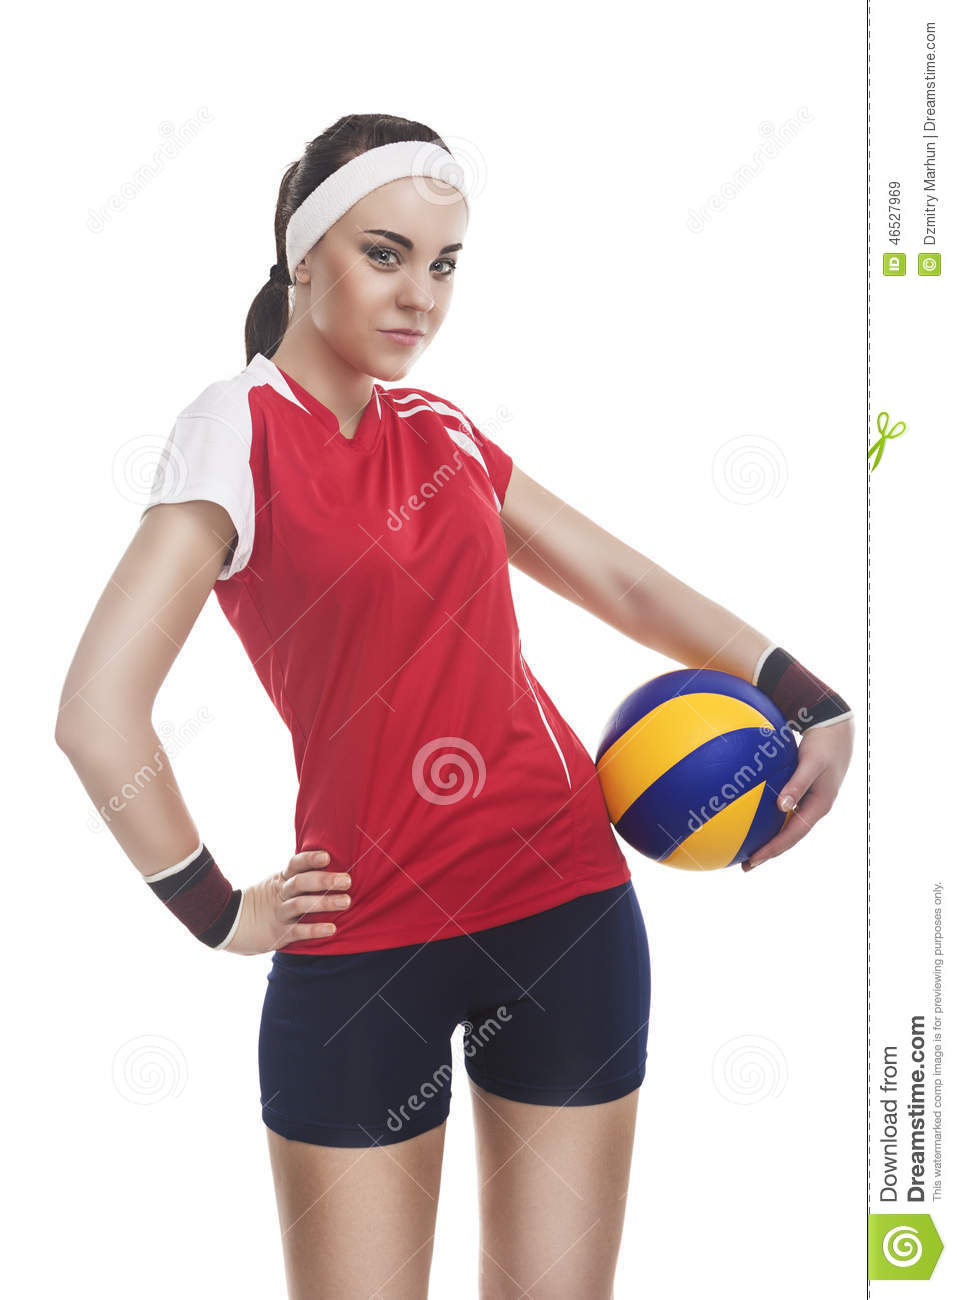 Female Volleyball Athlete Equipped In Modern Sport Outfit Smilin Stock Photo - Image 46527969